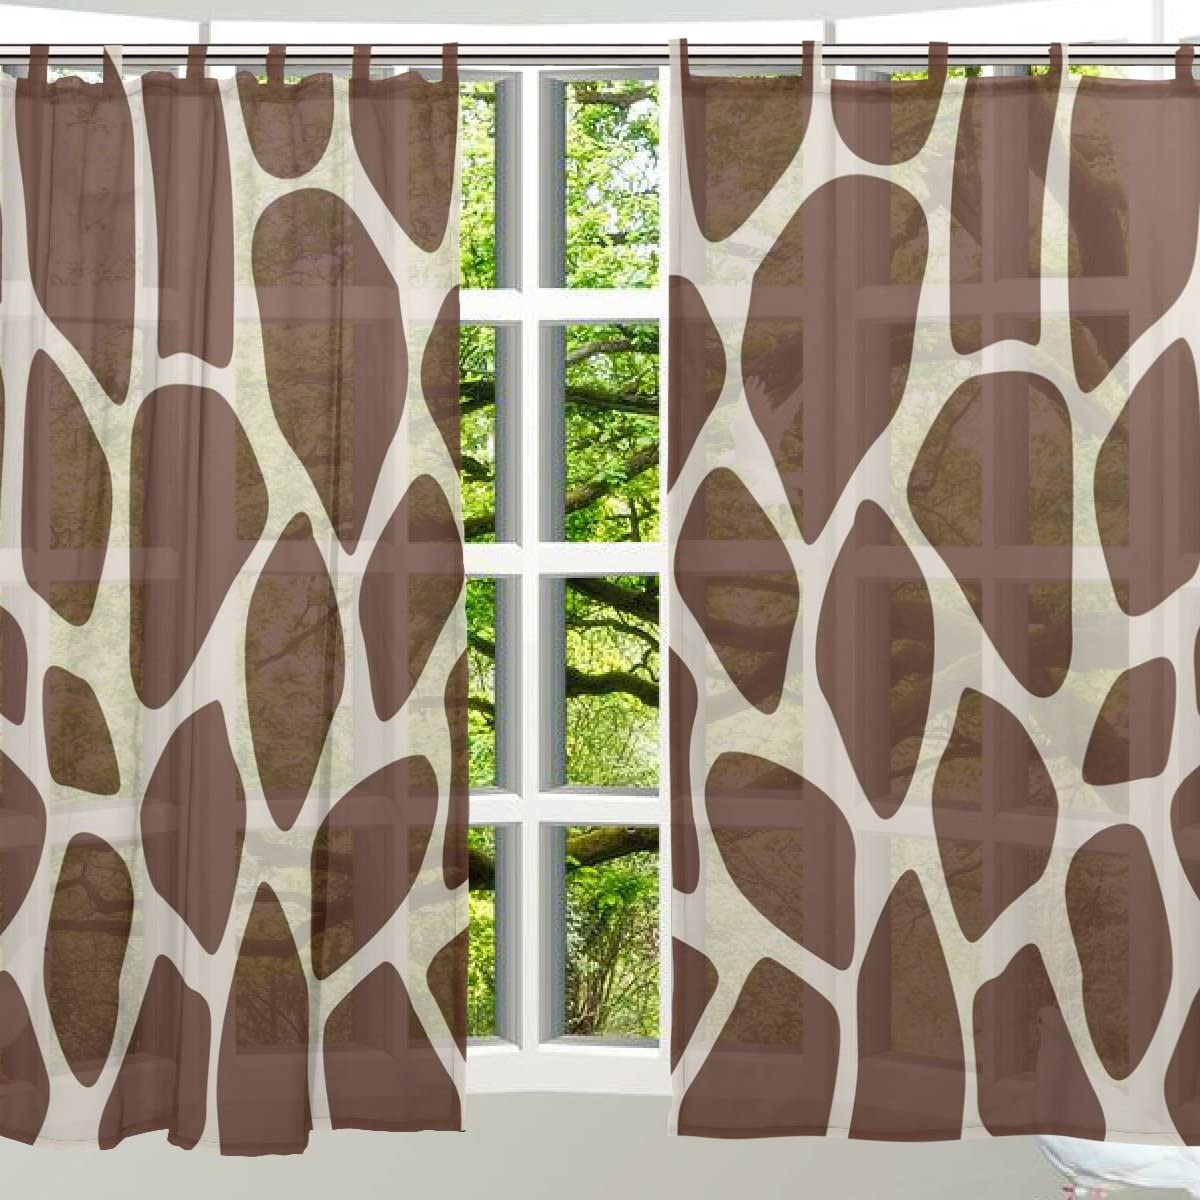 ALAZA 2 PCS Window Decoration Sheer Curtain Panels,Cute Giraffe Print,Polyester Window Gauze Curtains Living Room Bedroom Kid s Office Window Tie Top Curtain 55×78 inch Two Panels Set